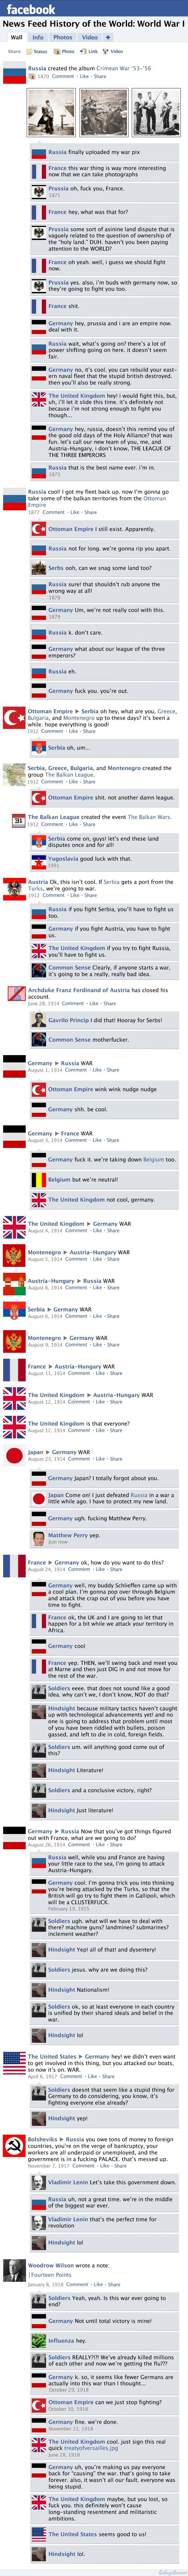 Facebook News Feed History of the World: World War I to World War II - CollegeHumor Post